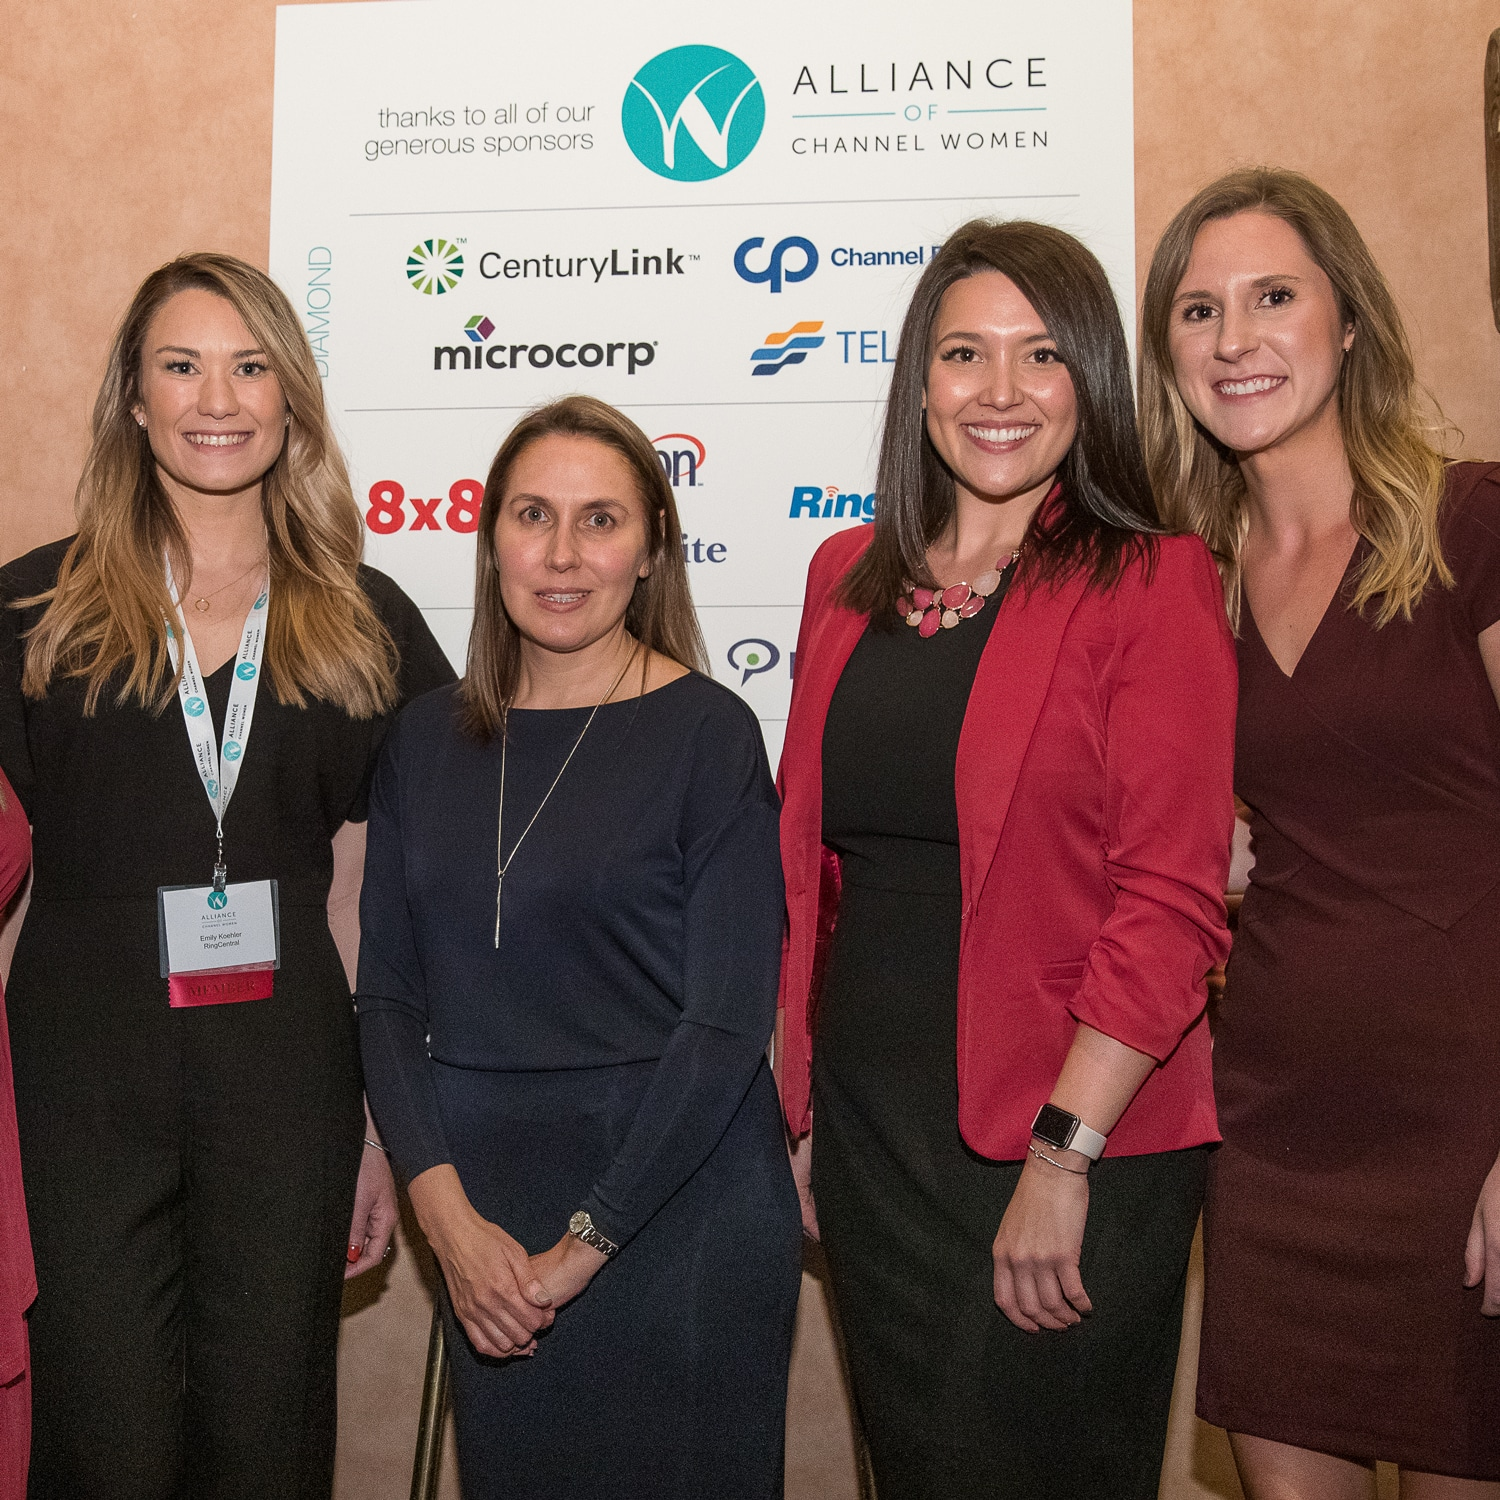 Sponsors Give Opportunities for Channel Women